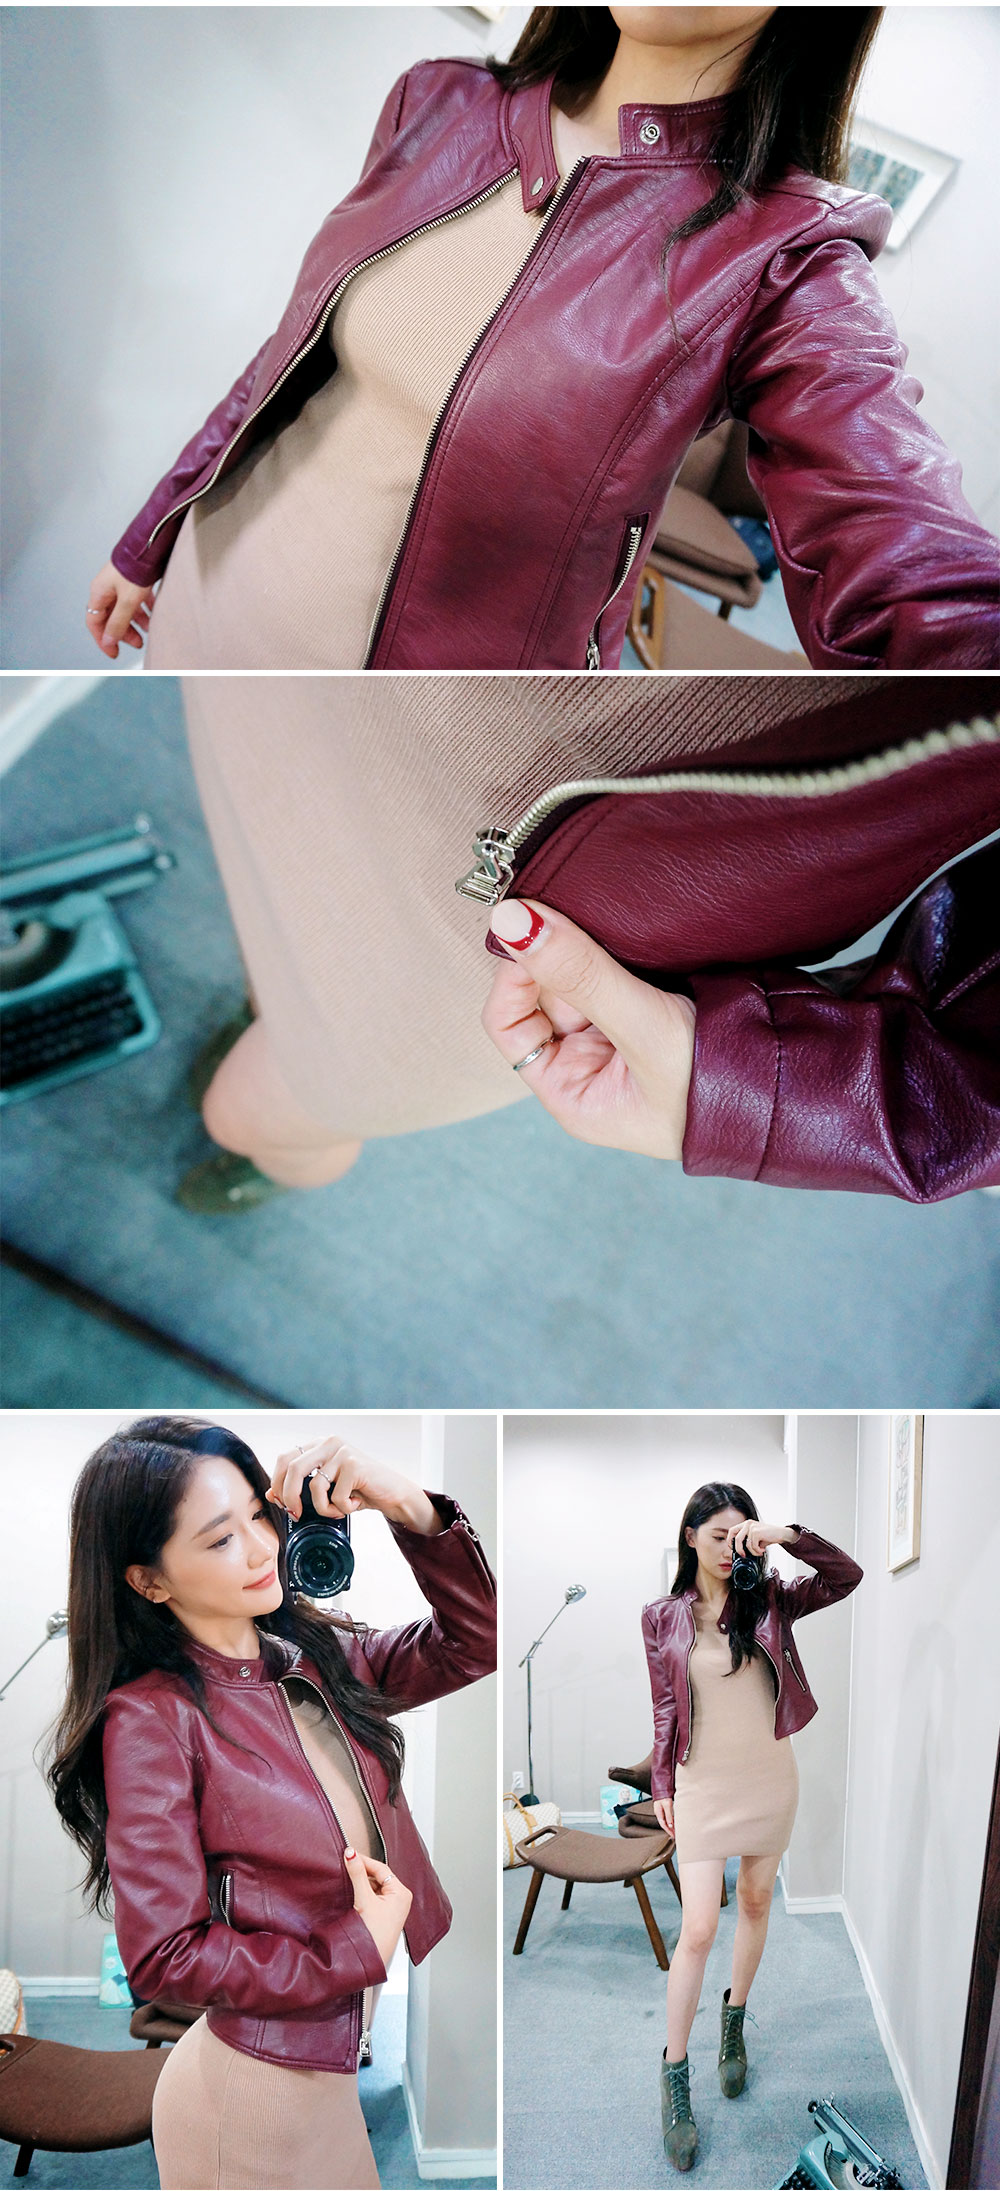 //cdn.nhanh.vn/cdn/store/29770/psCT/20181010/9451978/CHUUJK_Autumn_Walk_Zip_Up_Jacket_(12).jpg